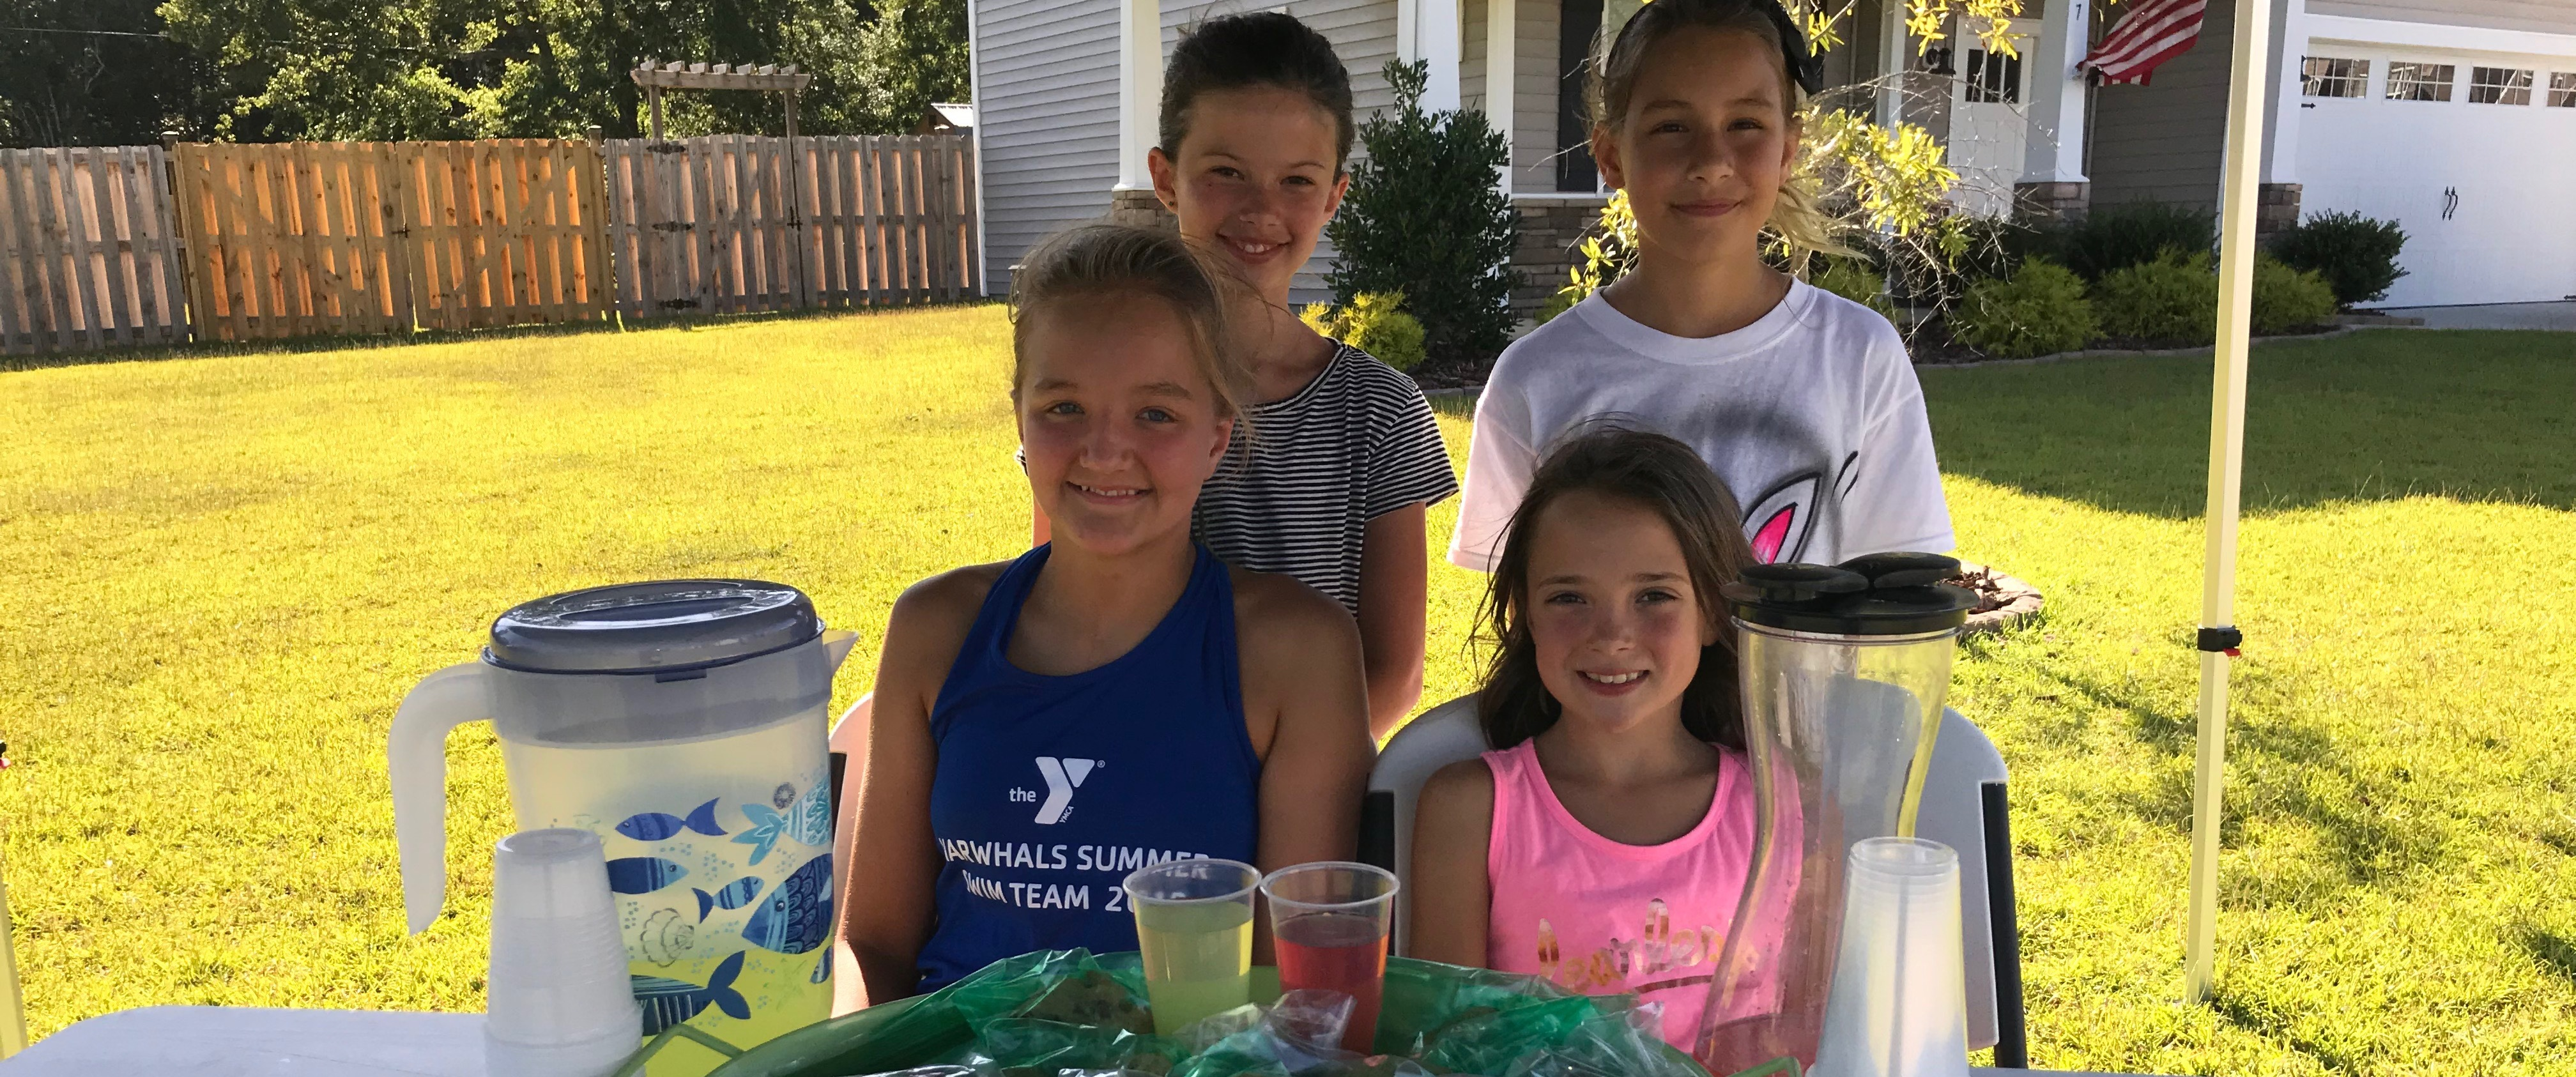 Calling all Entrepreneurs: Summer is Lemonade and Cookie Time